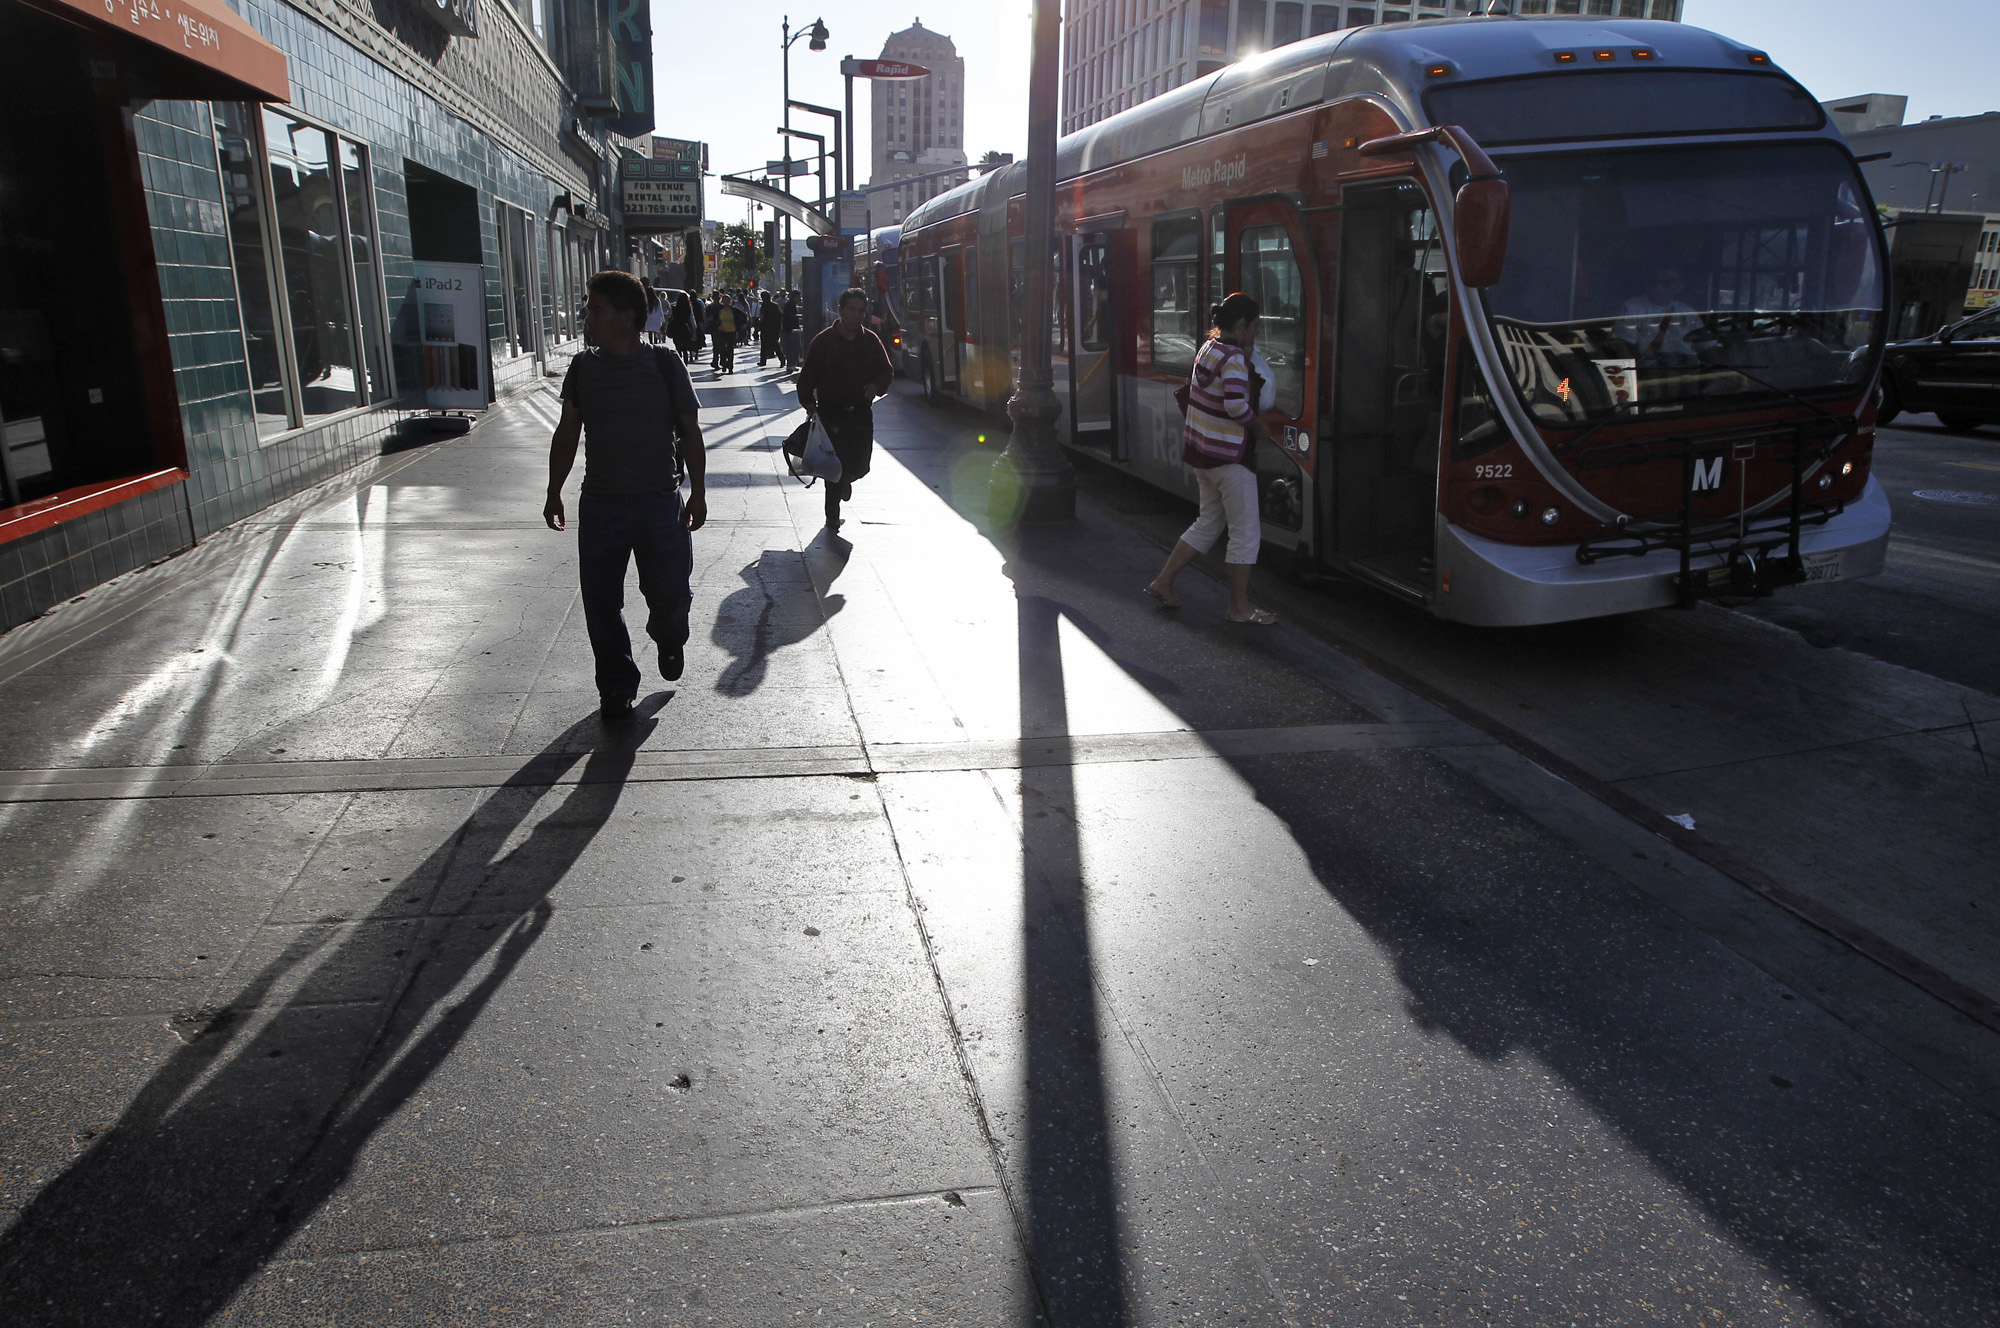 Riders step off an orange Metro bus on Wilshire Boulevard at a stop with no shade. The sun's rays are visible.